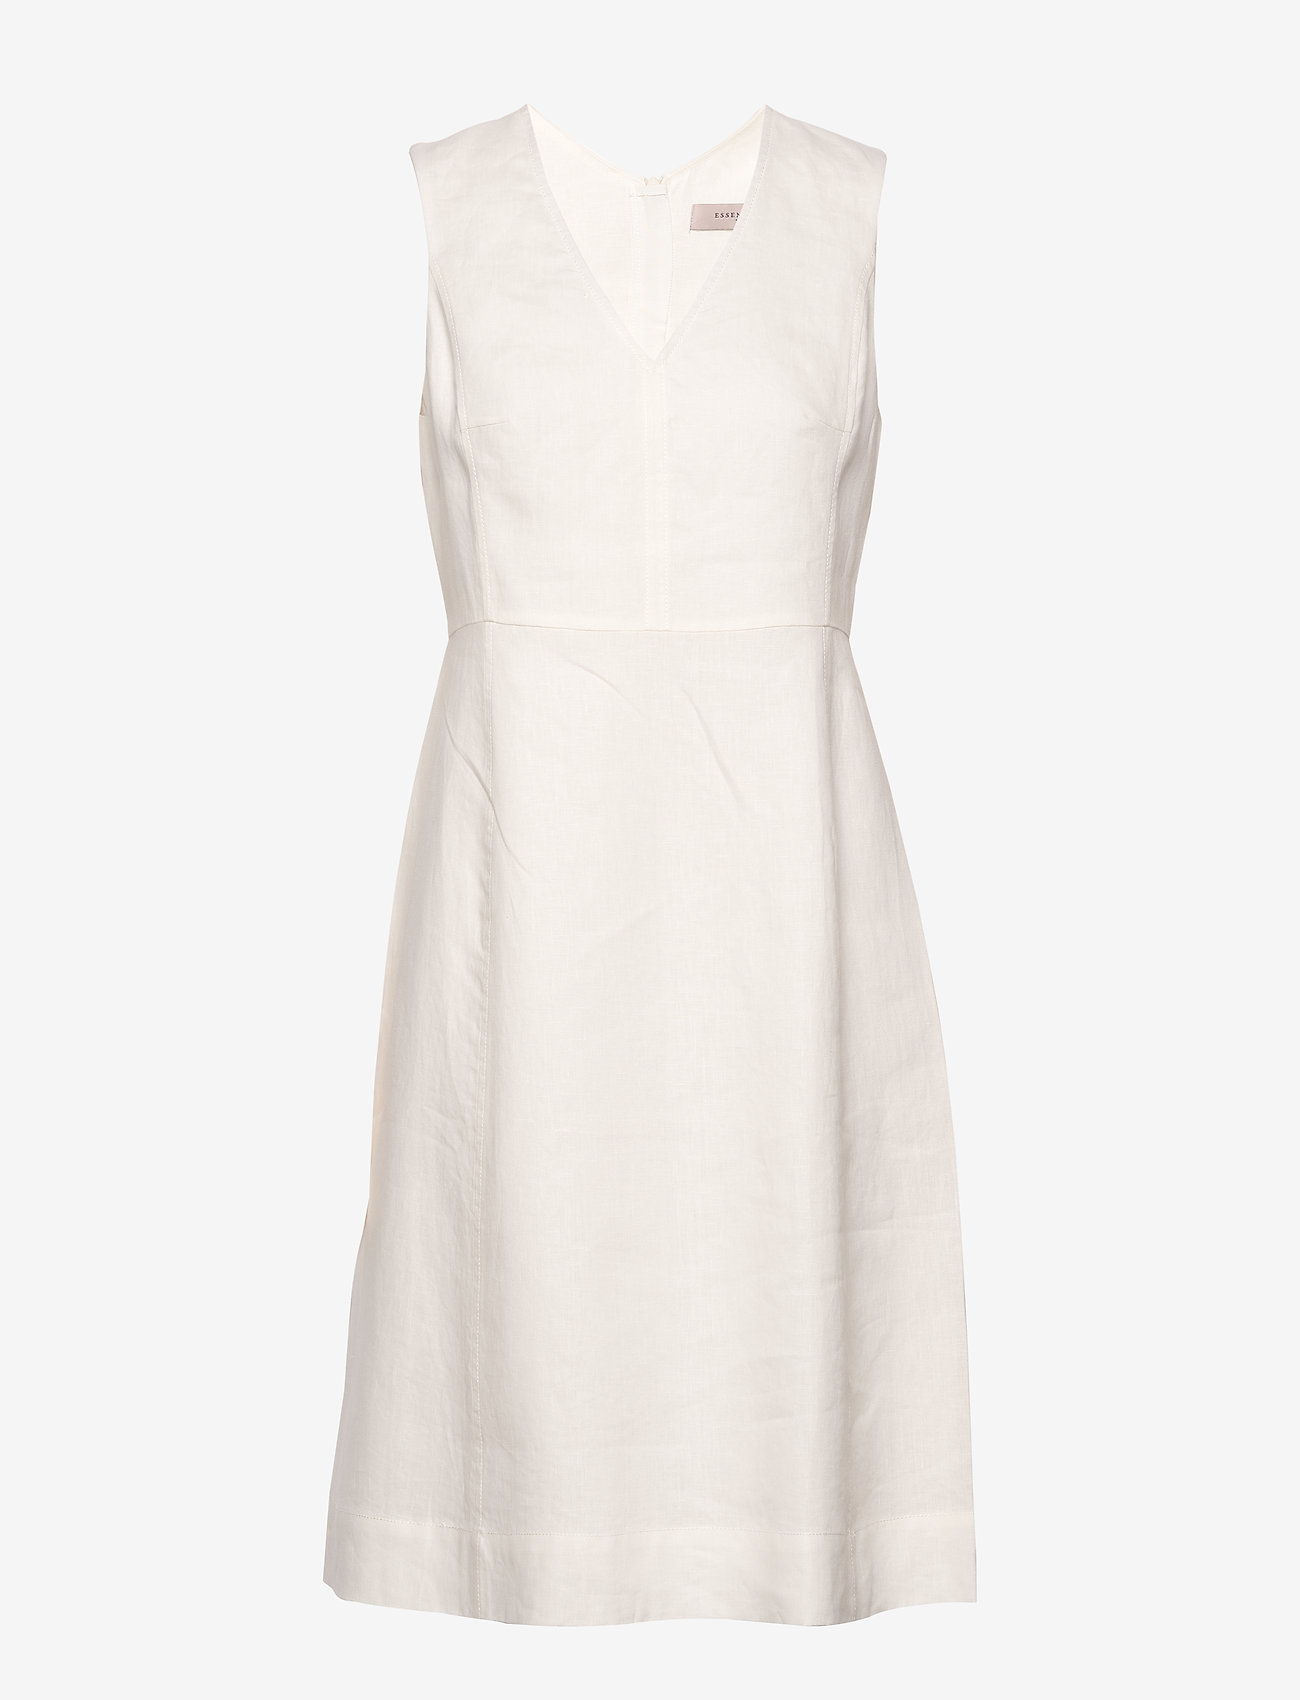 Noa Noa - Dress sleeveless - midi jurken - tofu - 0